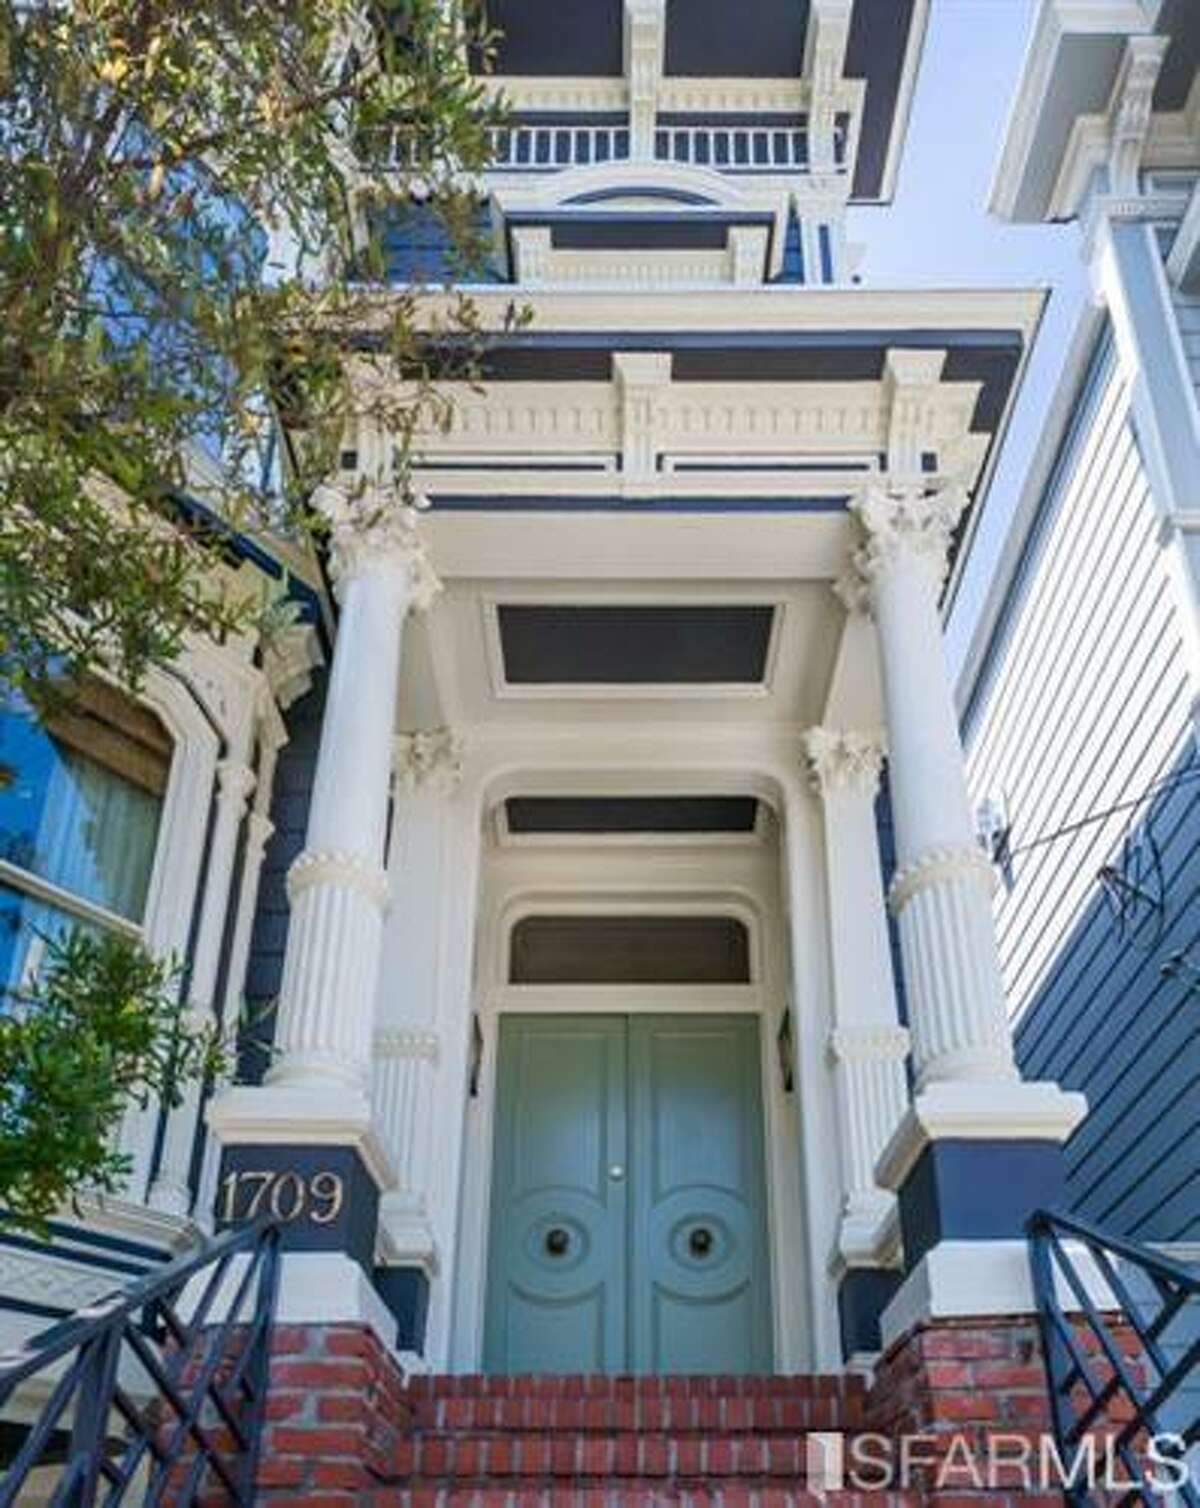 An 1883 San Francisco Victorian is on the market for $4.15 million.